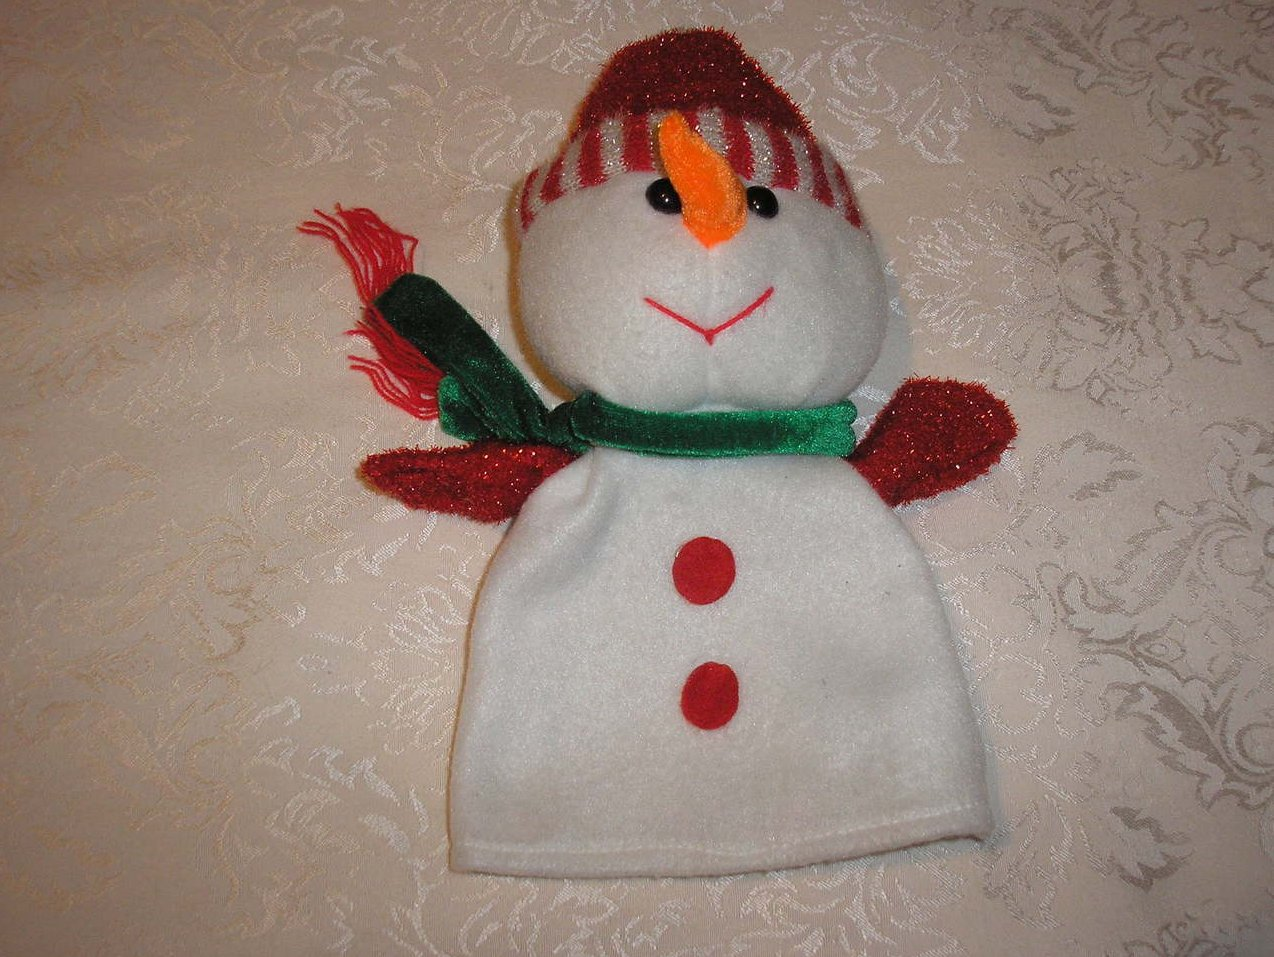 Christmas Snowman Sparkly Hand Puppet 12 inches gently used